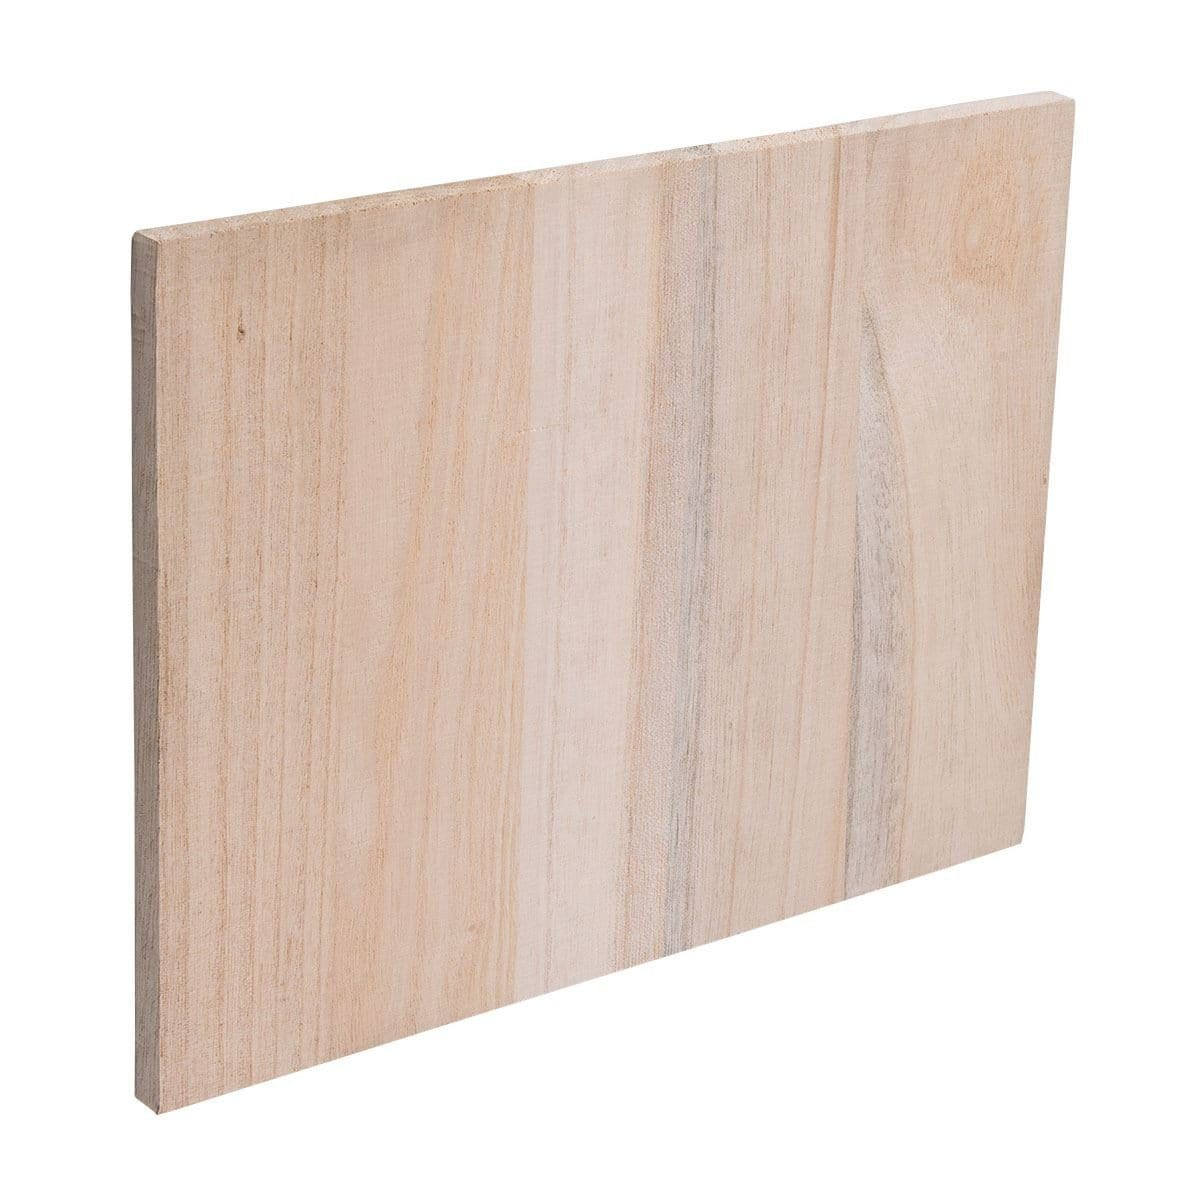 Paulownia Break Board Set - 12mm